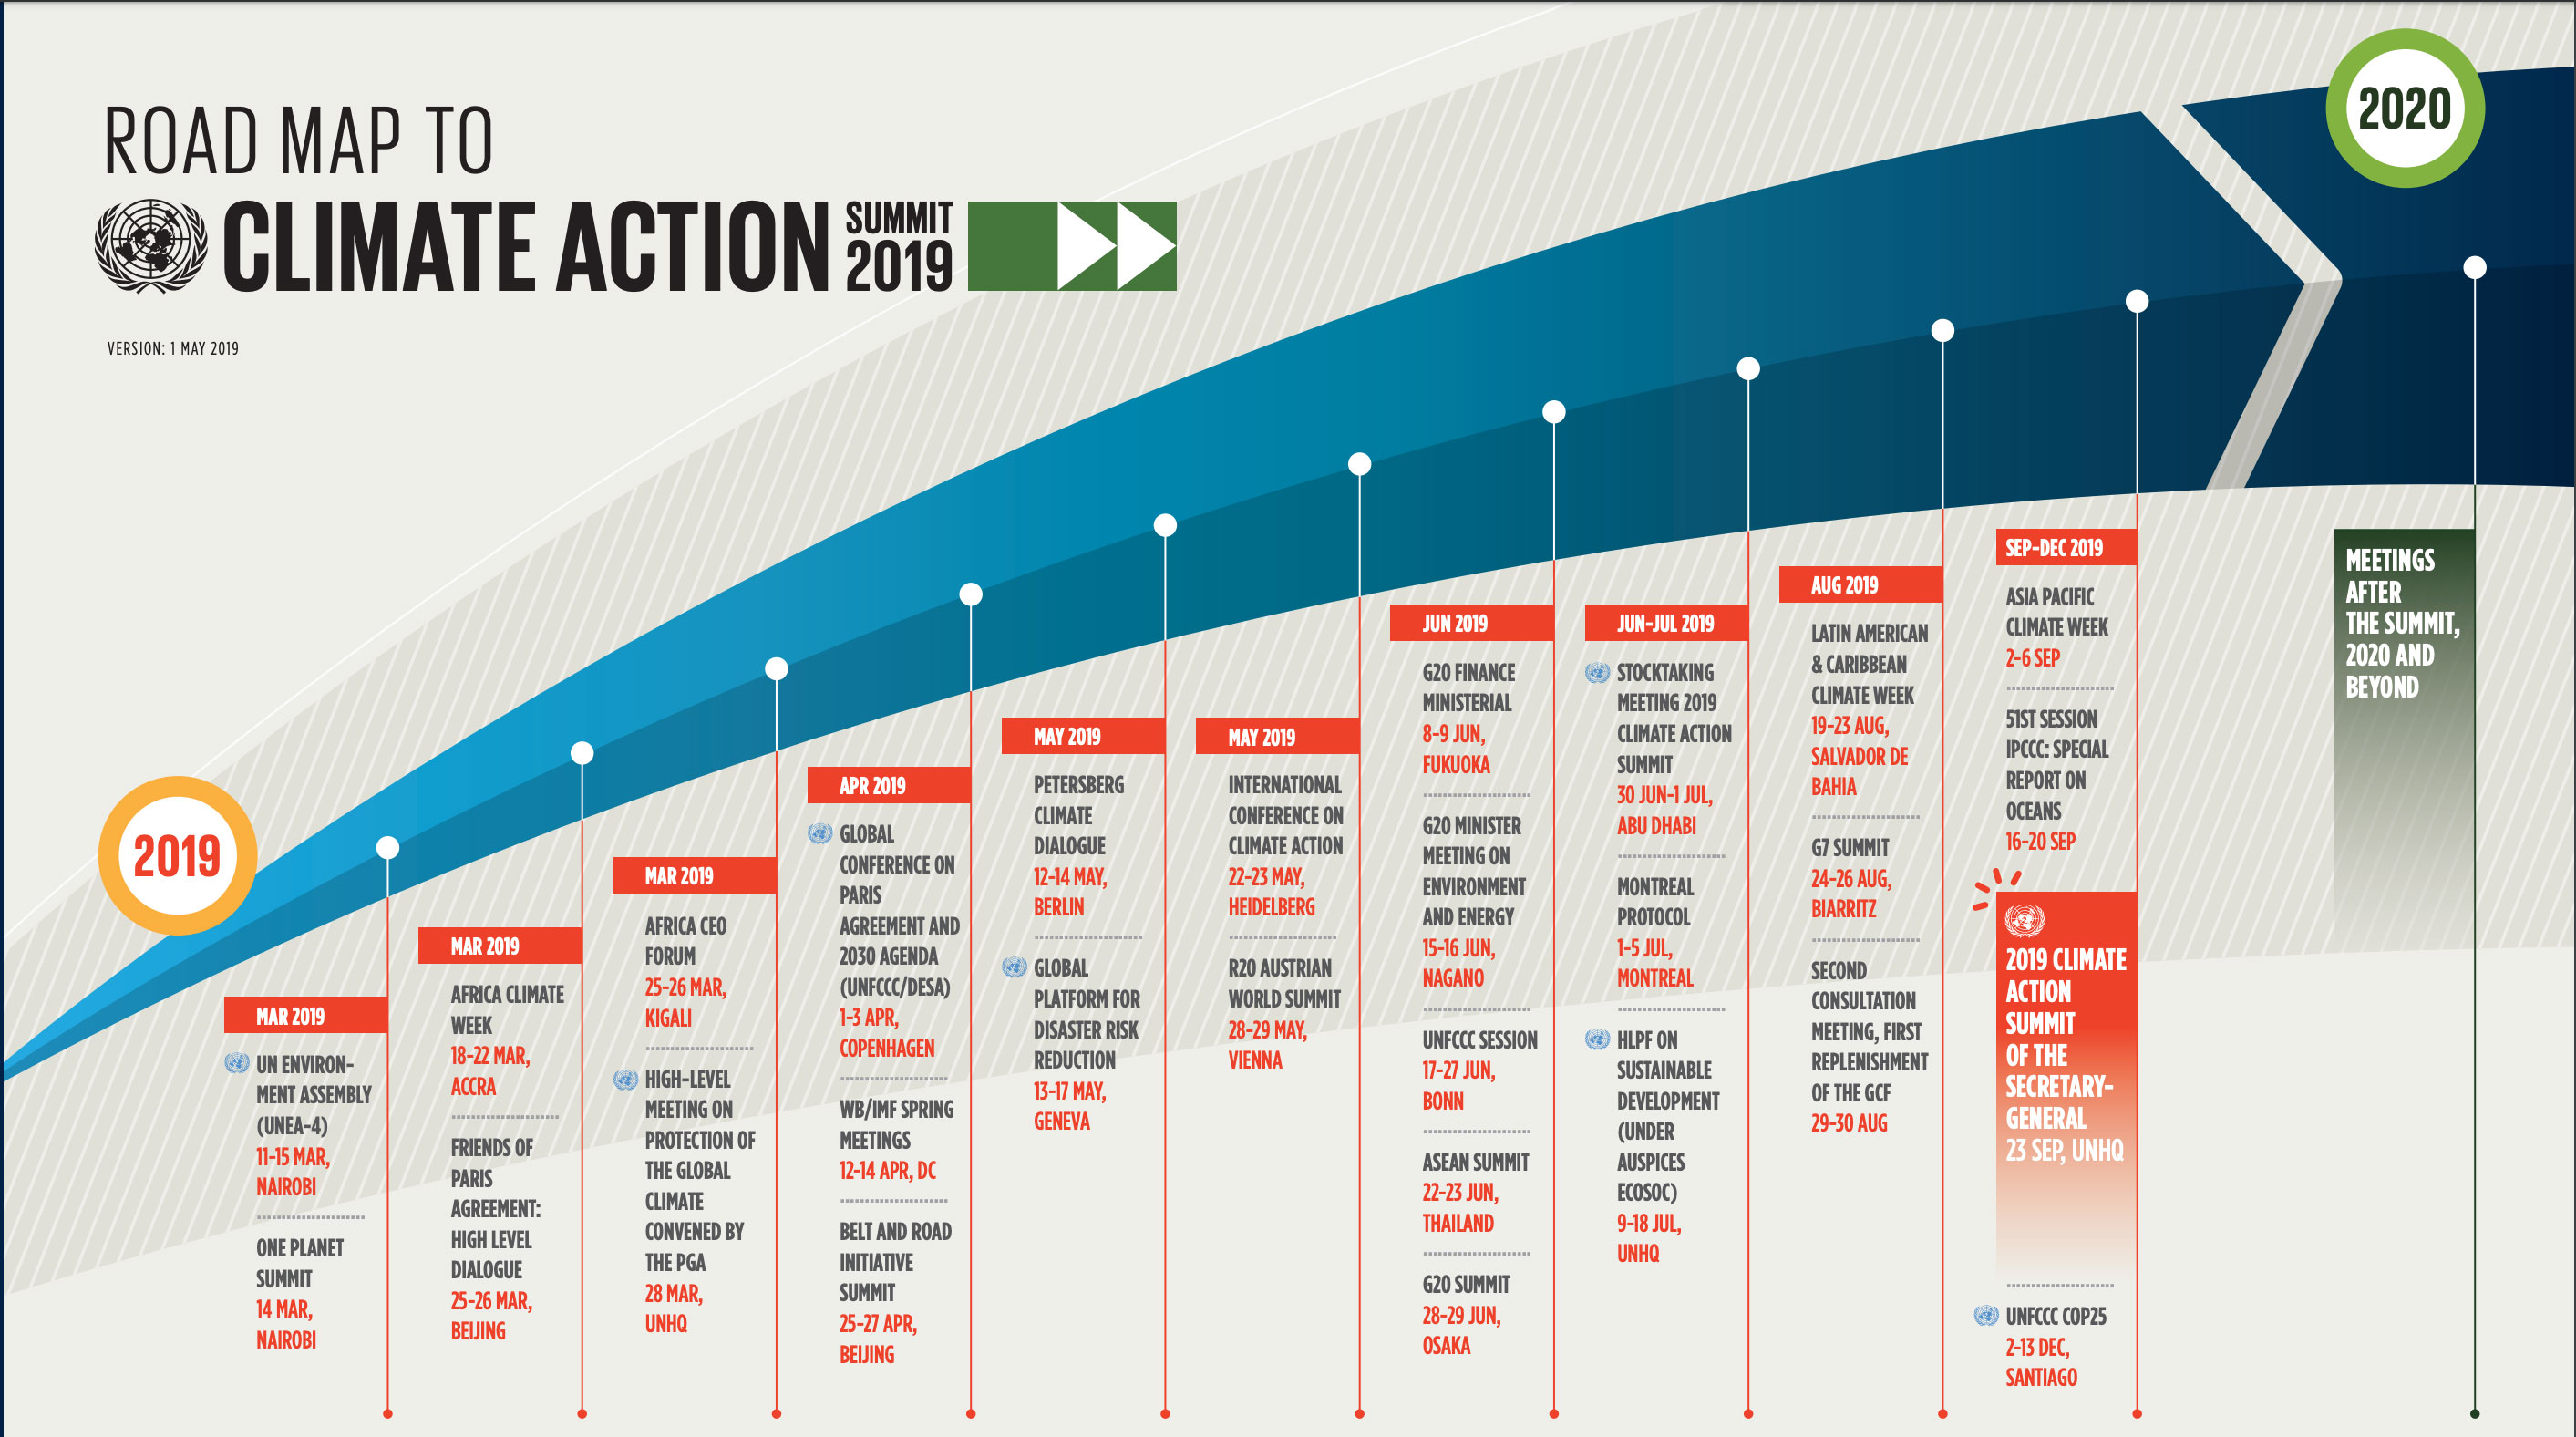 Road map to summit climate action 2019